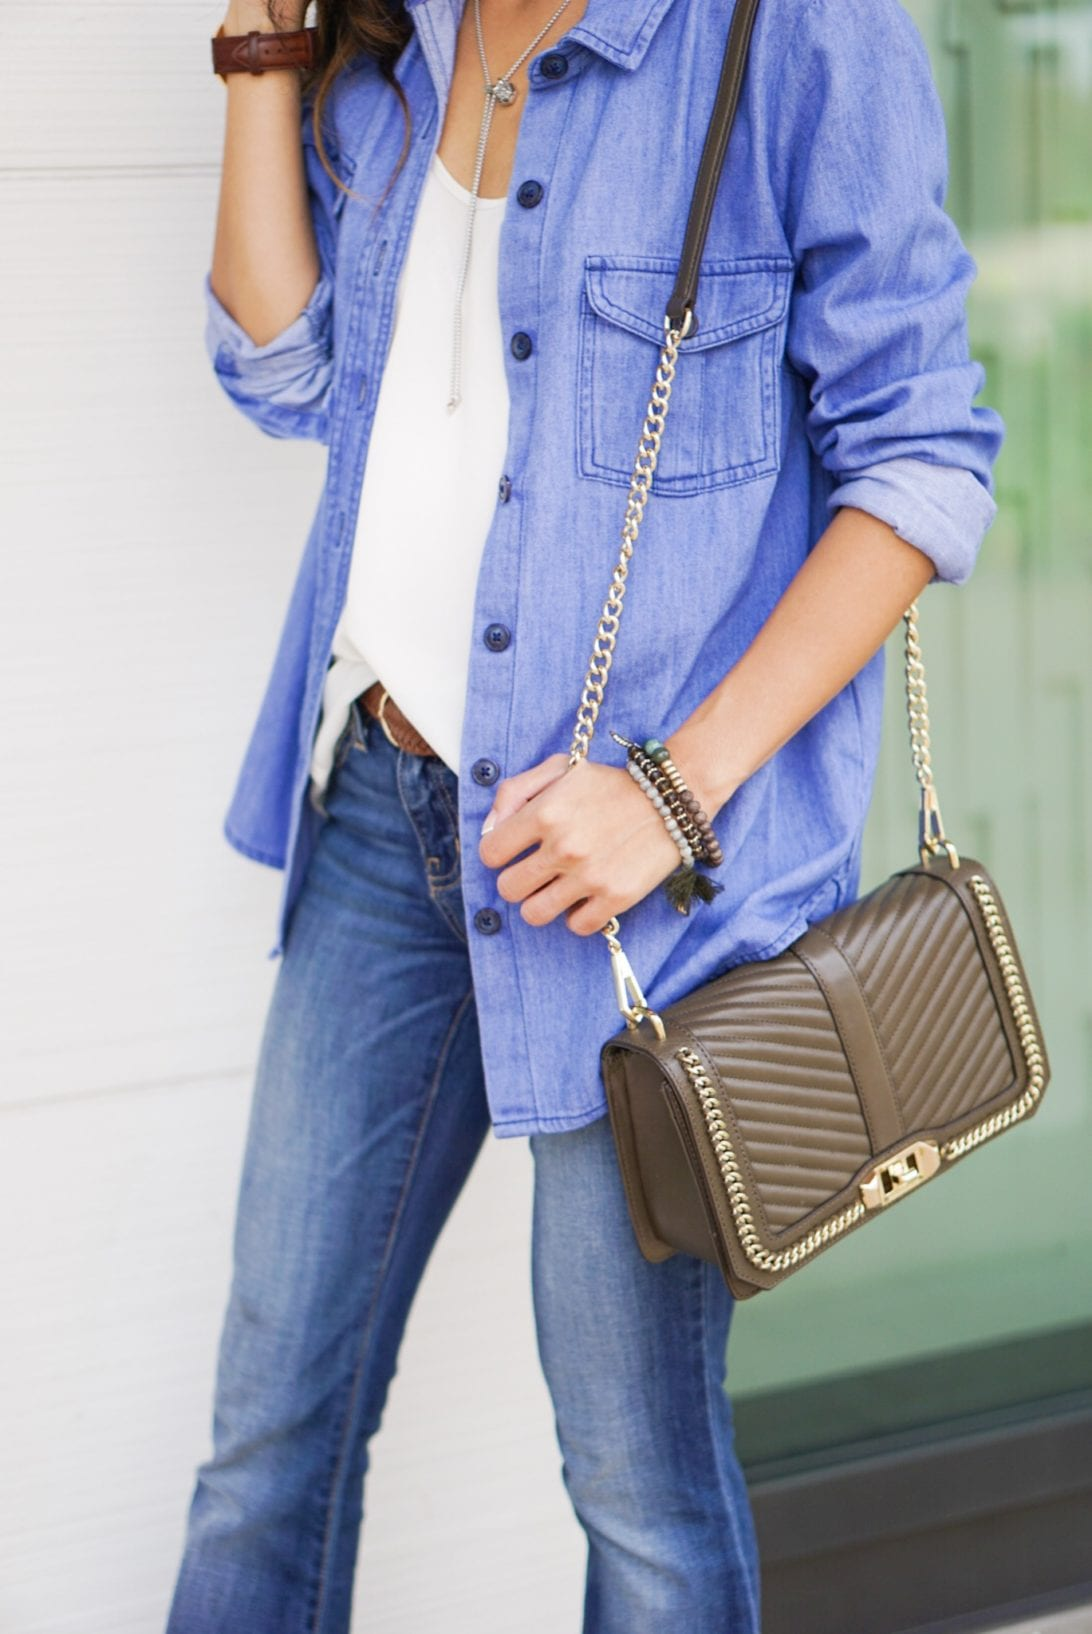 rebecca minkoff bag, old navy denim shirt